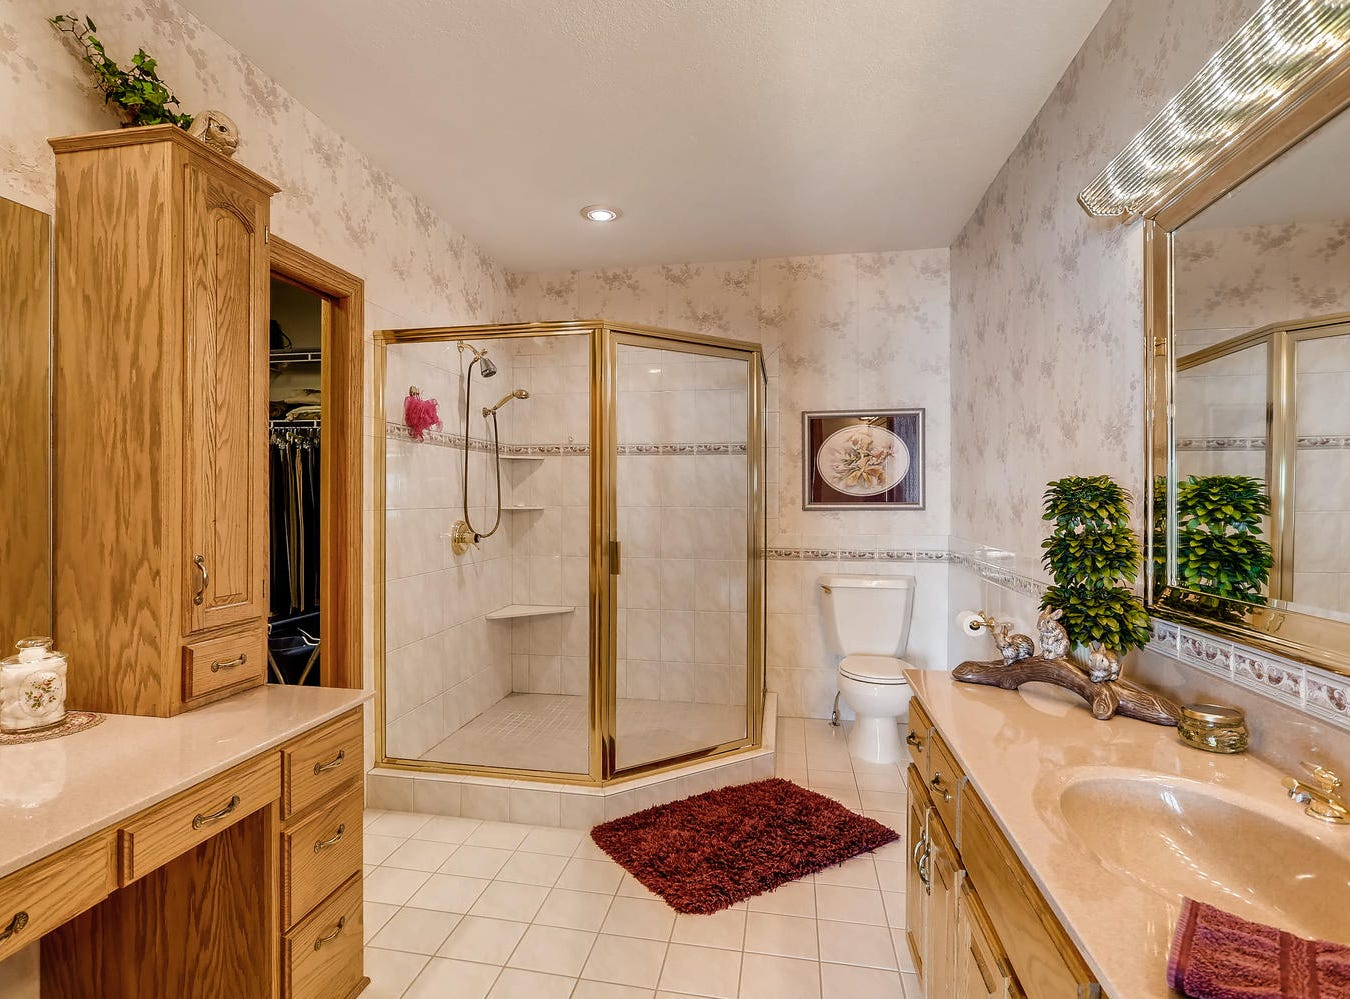 The en suite features a walk-in shower, dressing vanity and an adjacent walk-in closet.